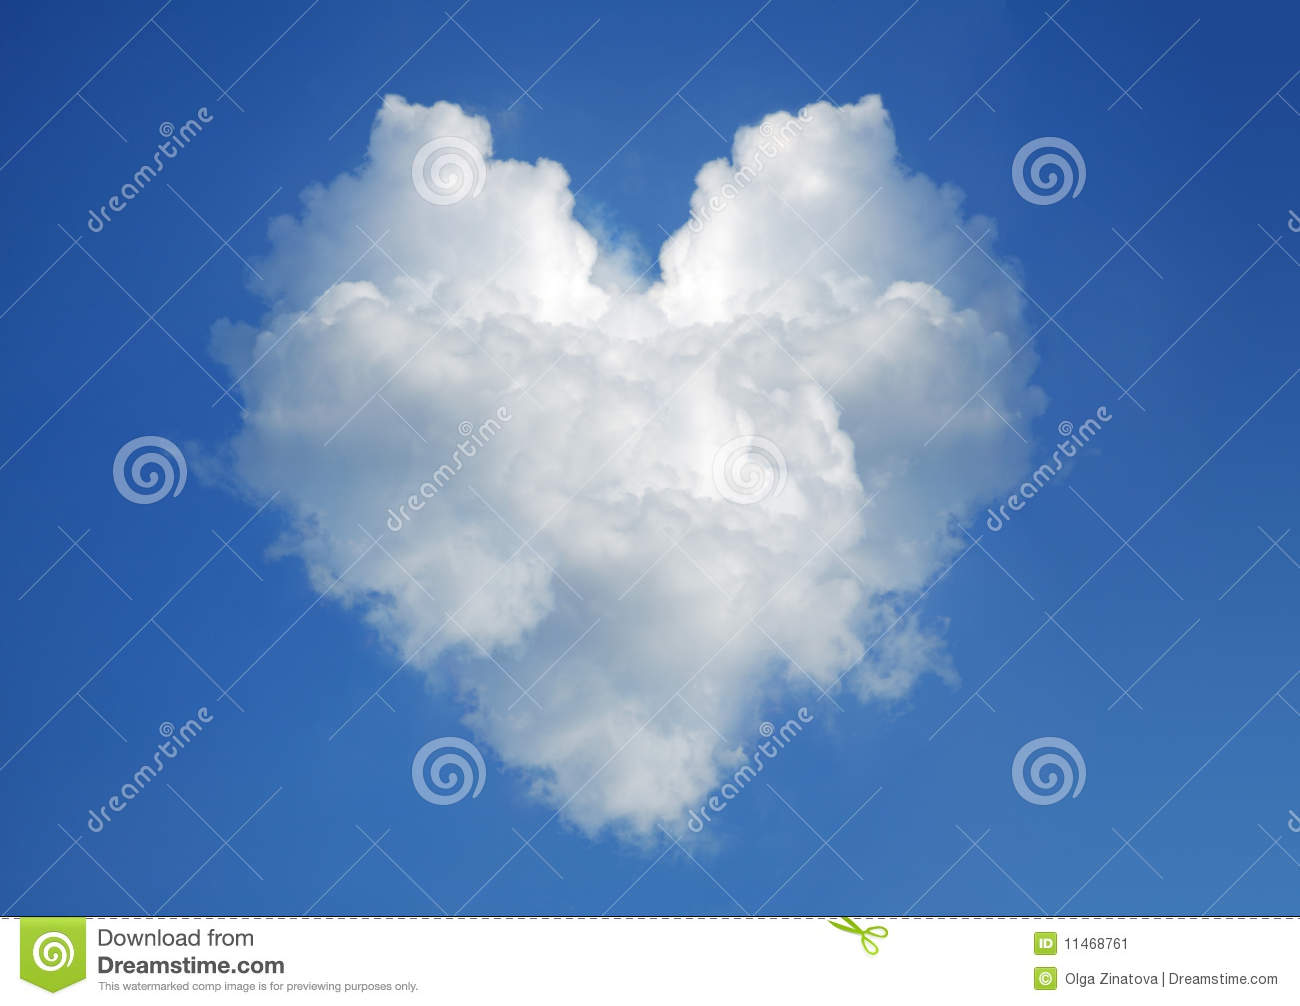 Cloud In The Form Of Heart Stock Image - Image: 11468761